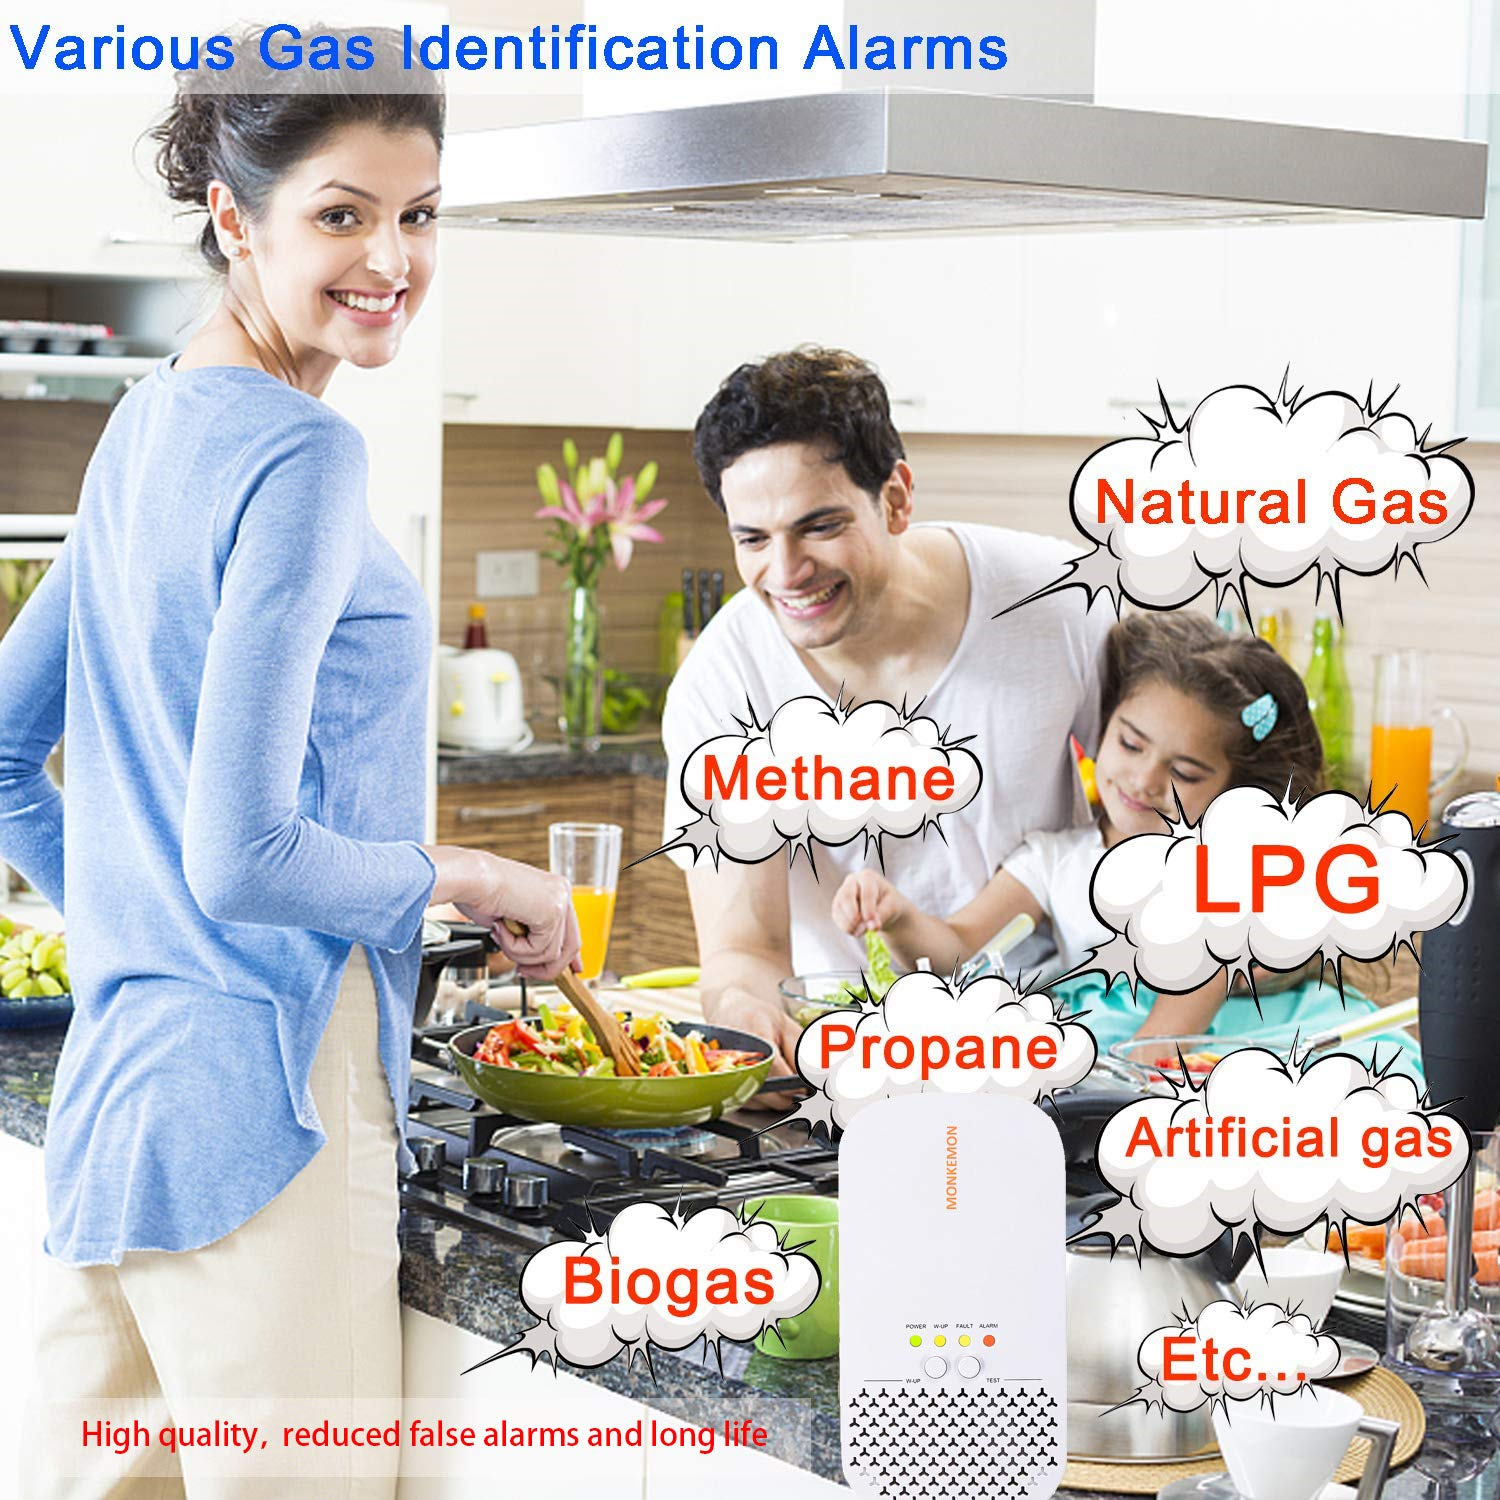 Monkemon Upgrade Plug-in Natural Gas Detector Propane Methane for Home Safety Combustible Gas Leak Alarm Sensor, High Sensitivity, Easy to Set Up and Use MK-GF401